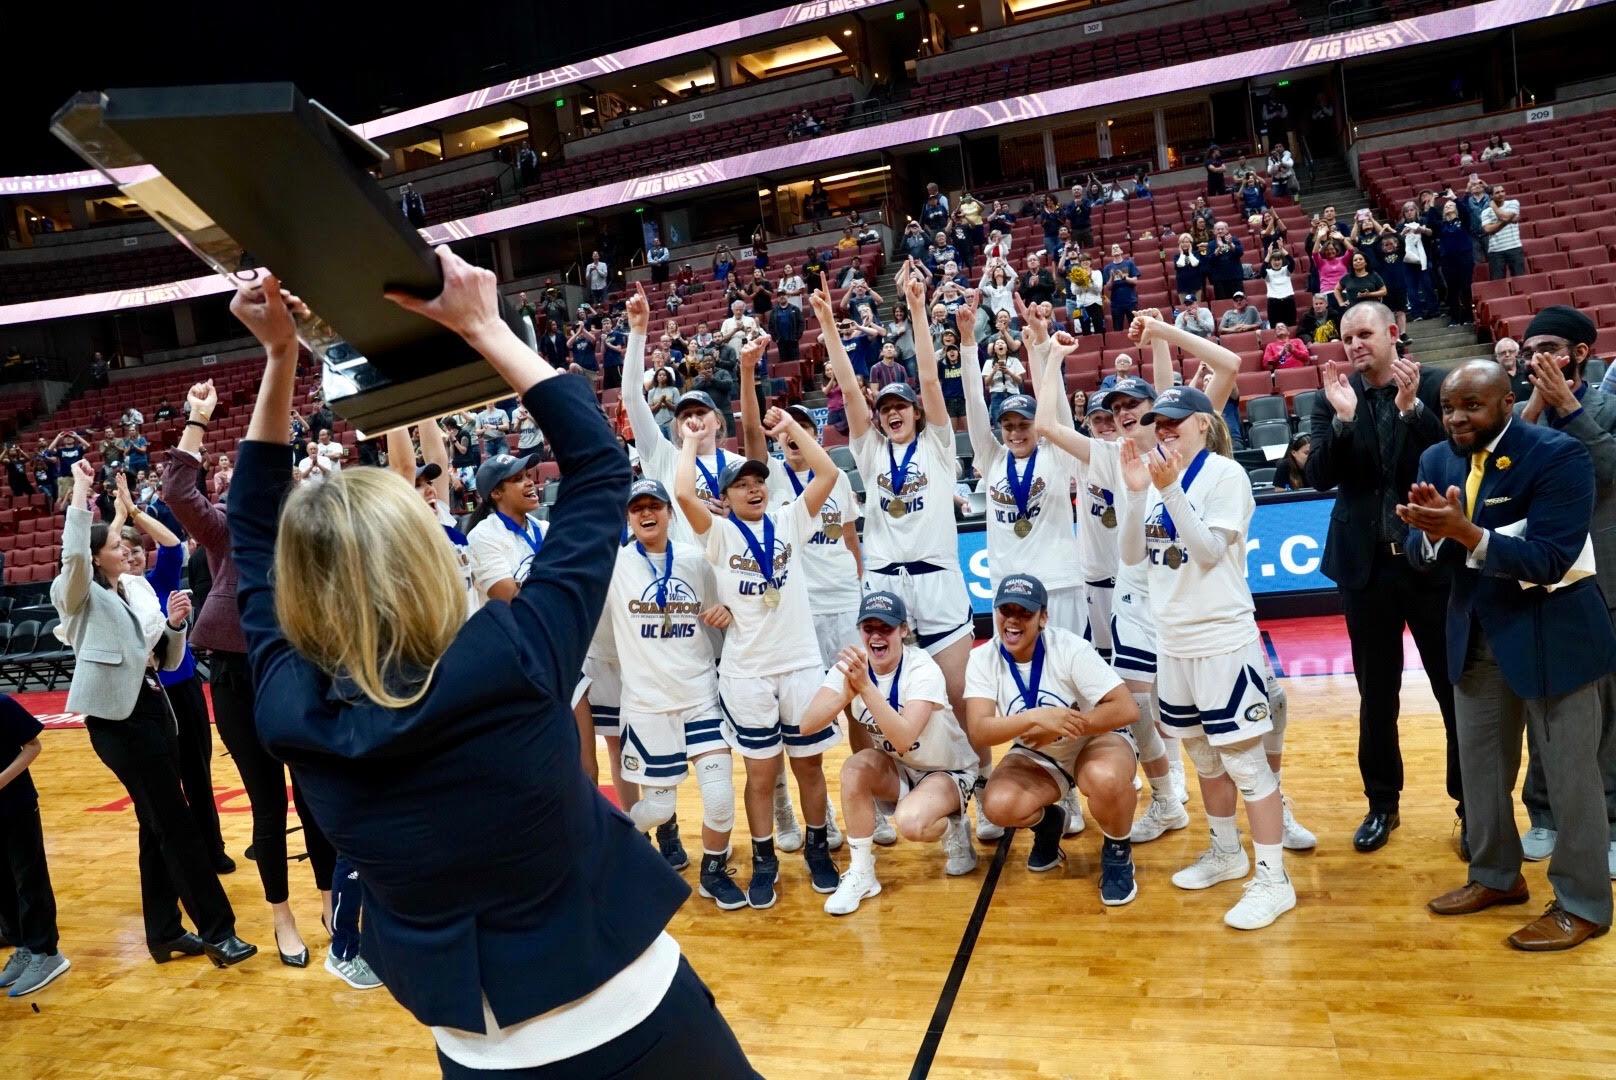 After three years of heartbreak, the Aggies are going dancing - The Aggie